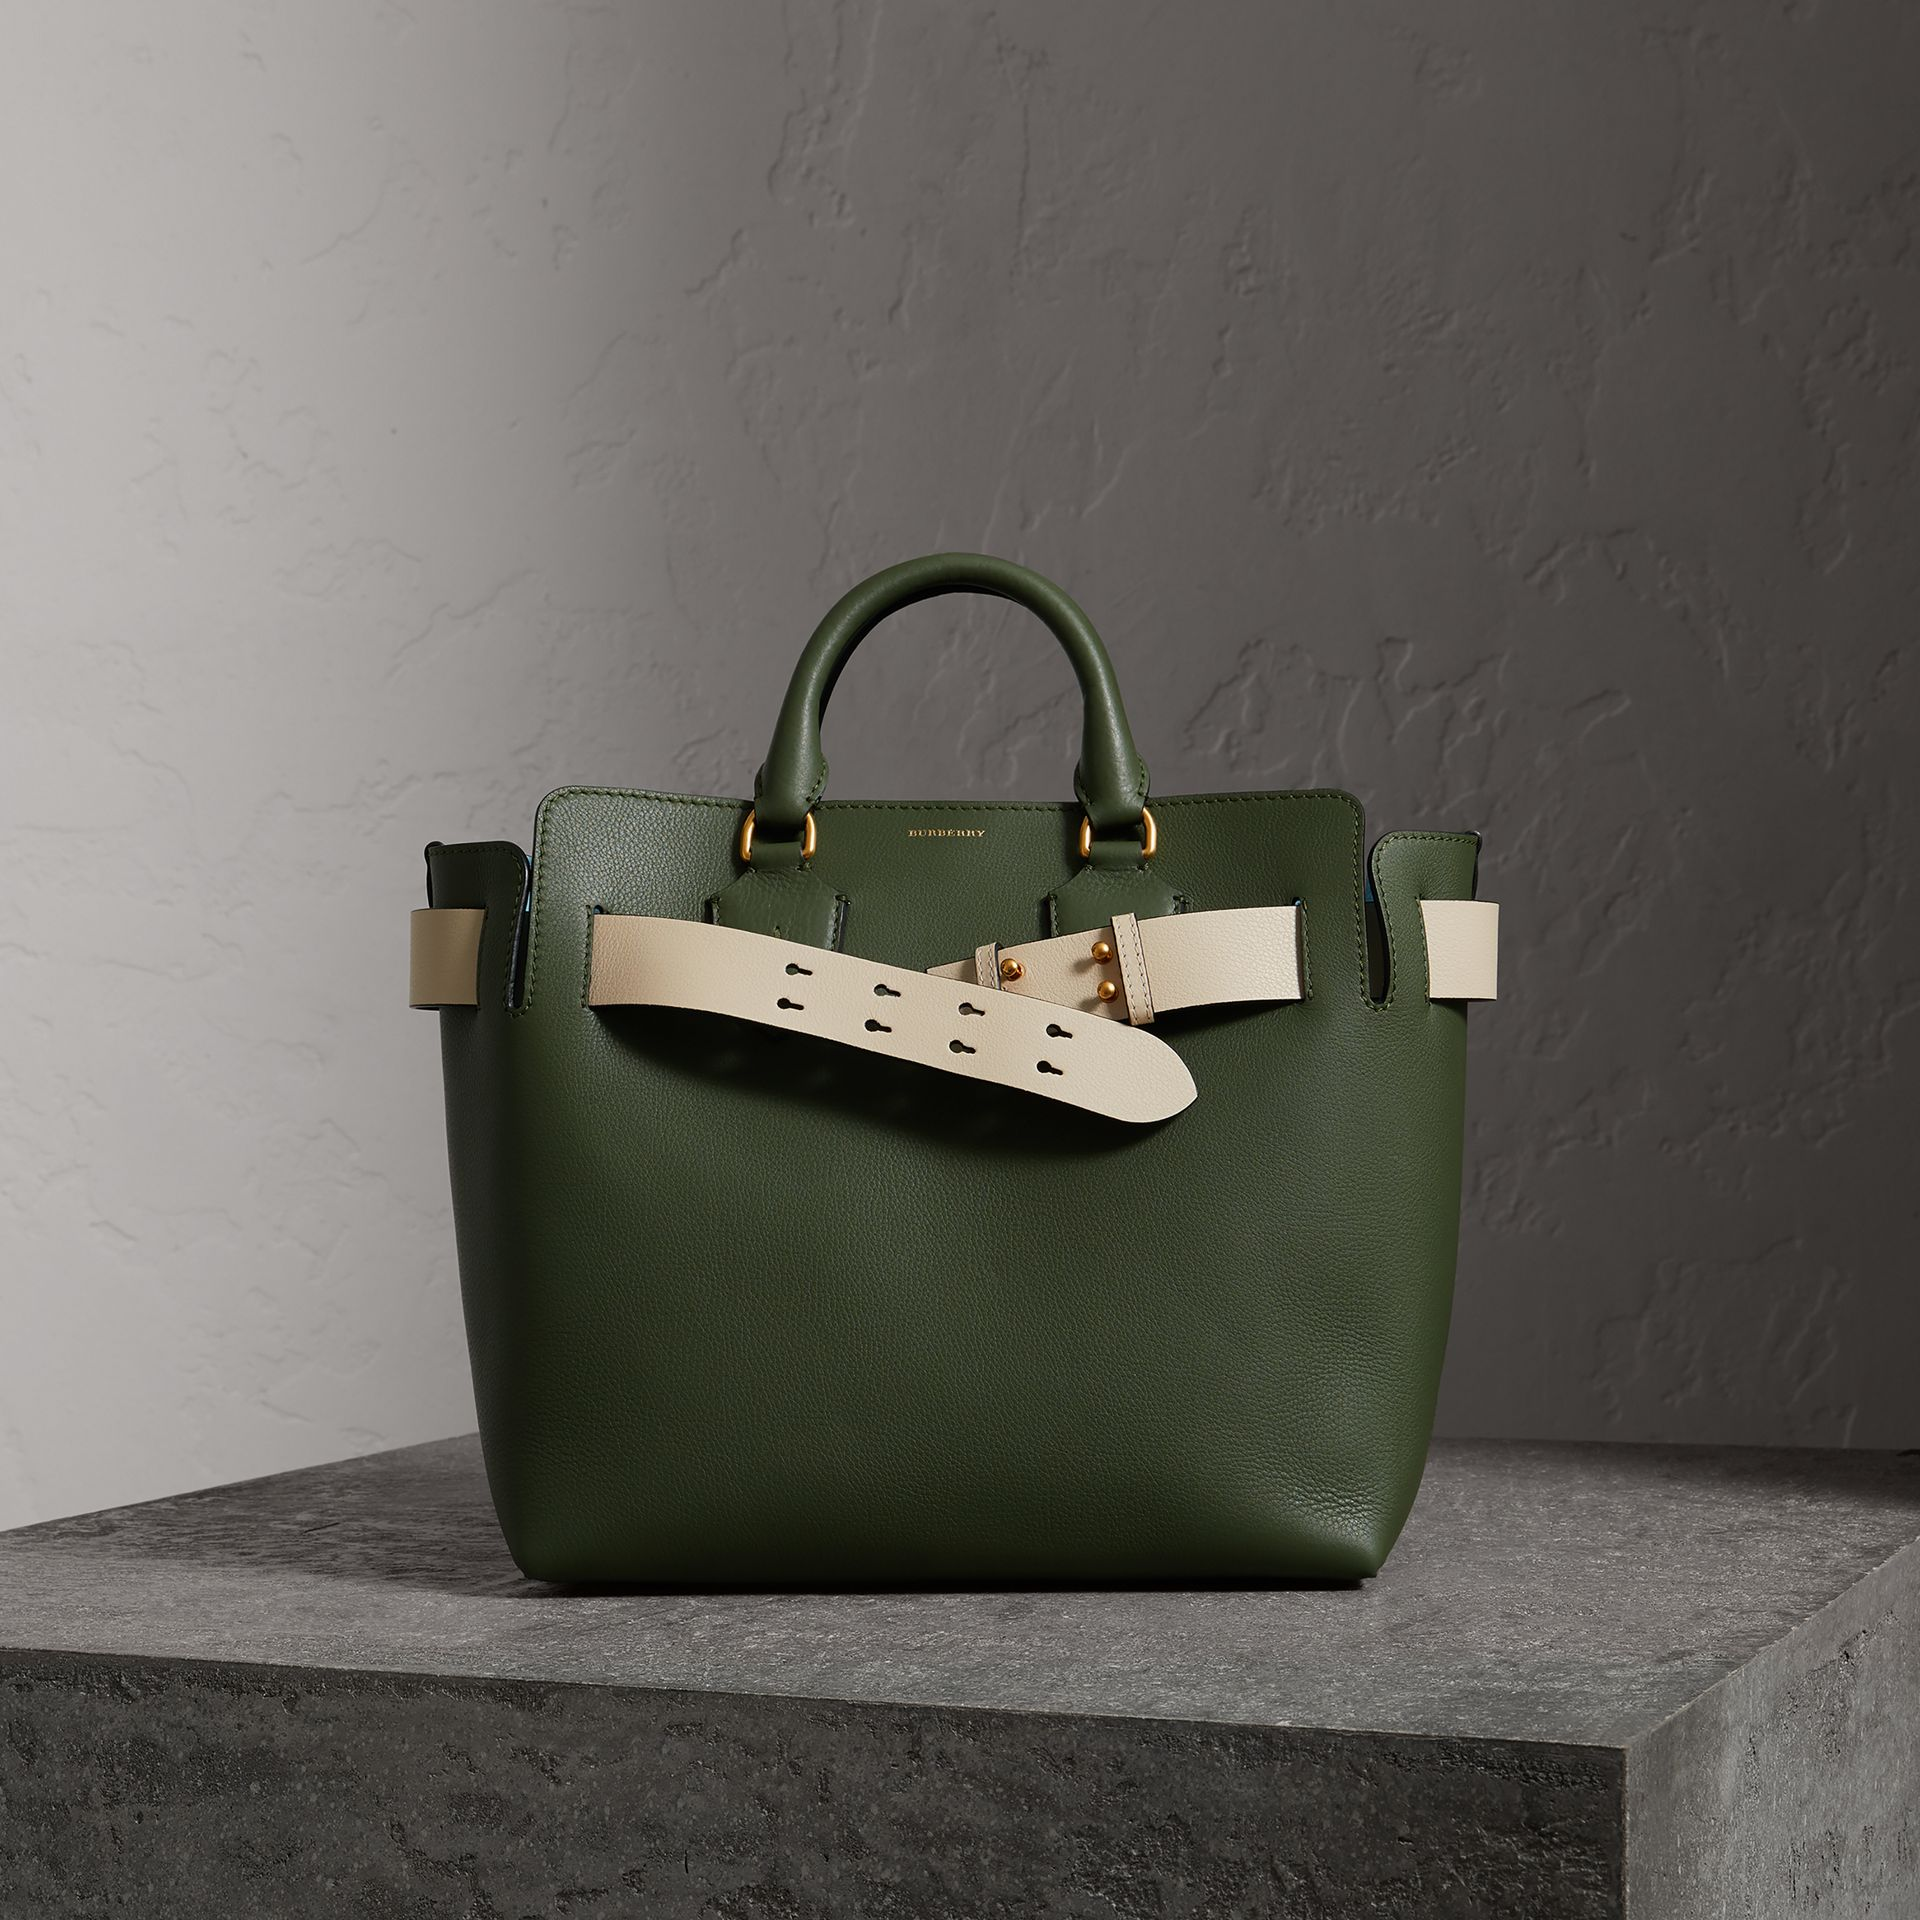 Sac The Belt moyen en cuir (Vert Sauge) - Femme | Burberry - photo de la galerie 0